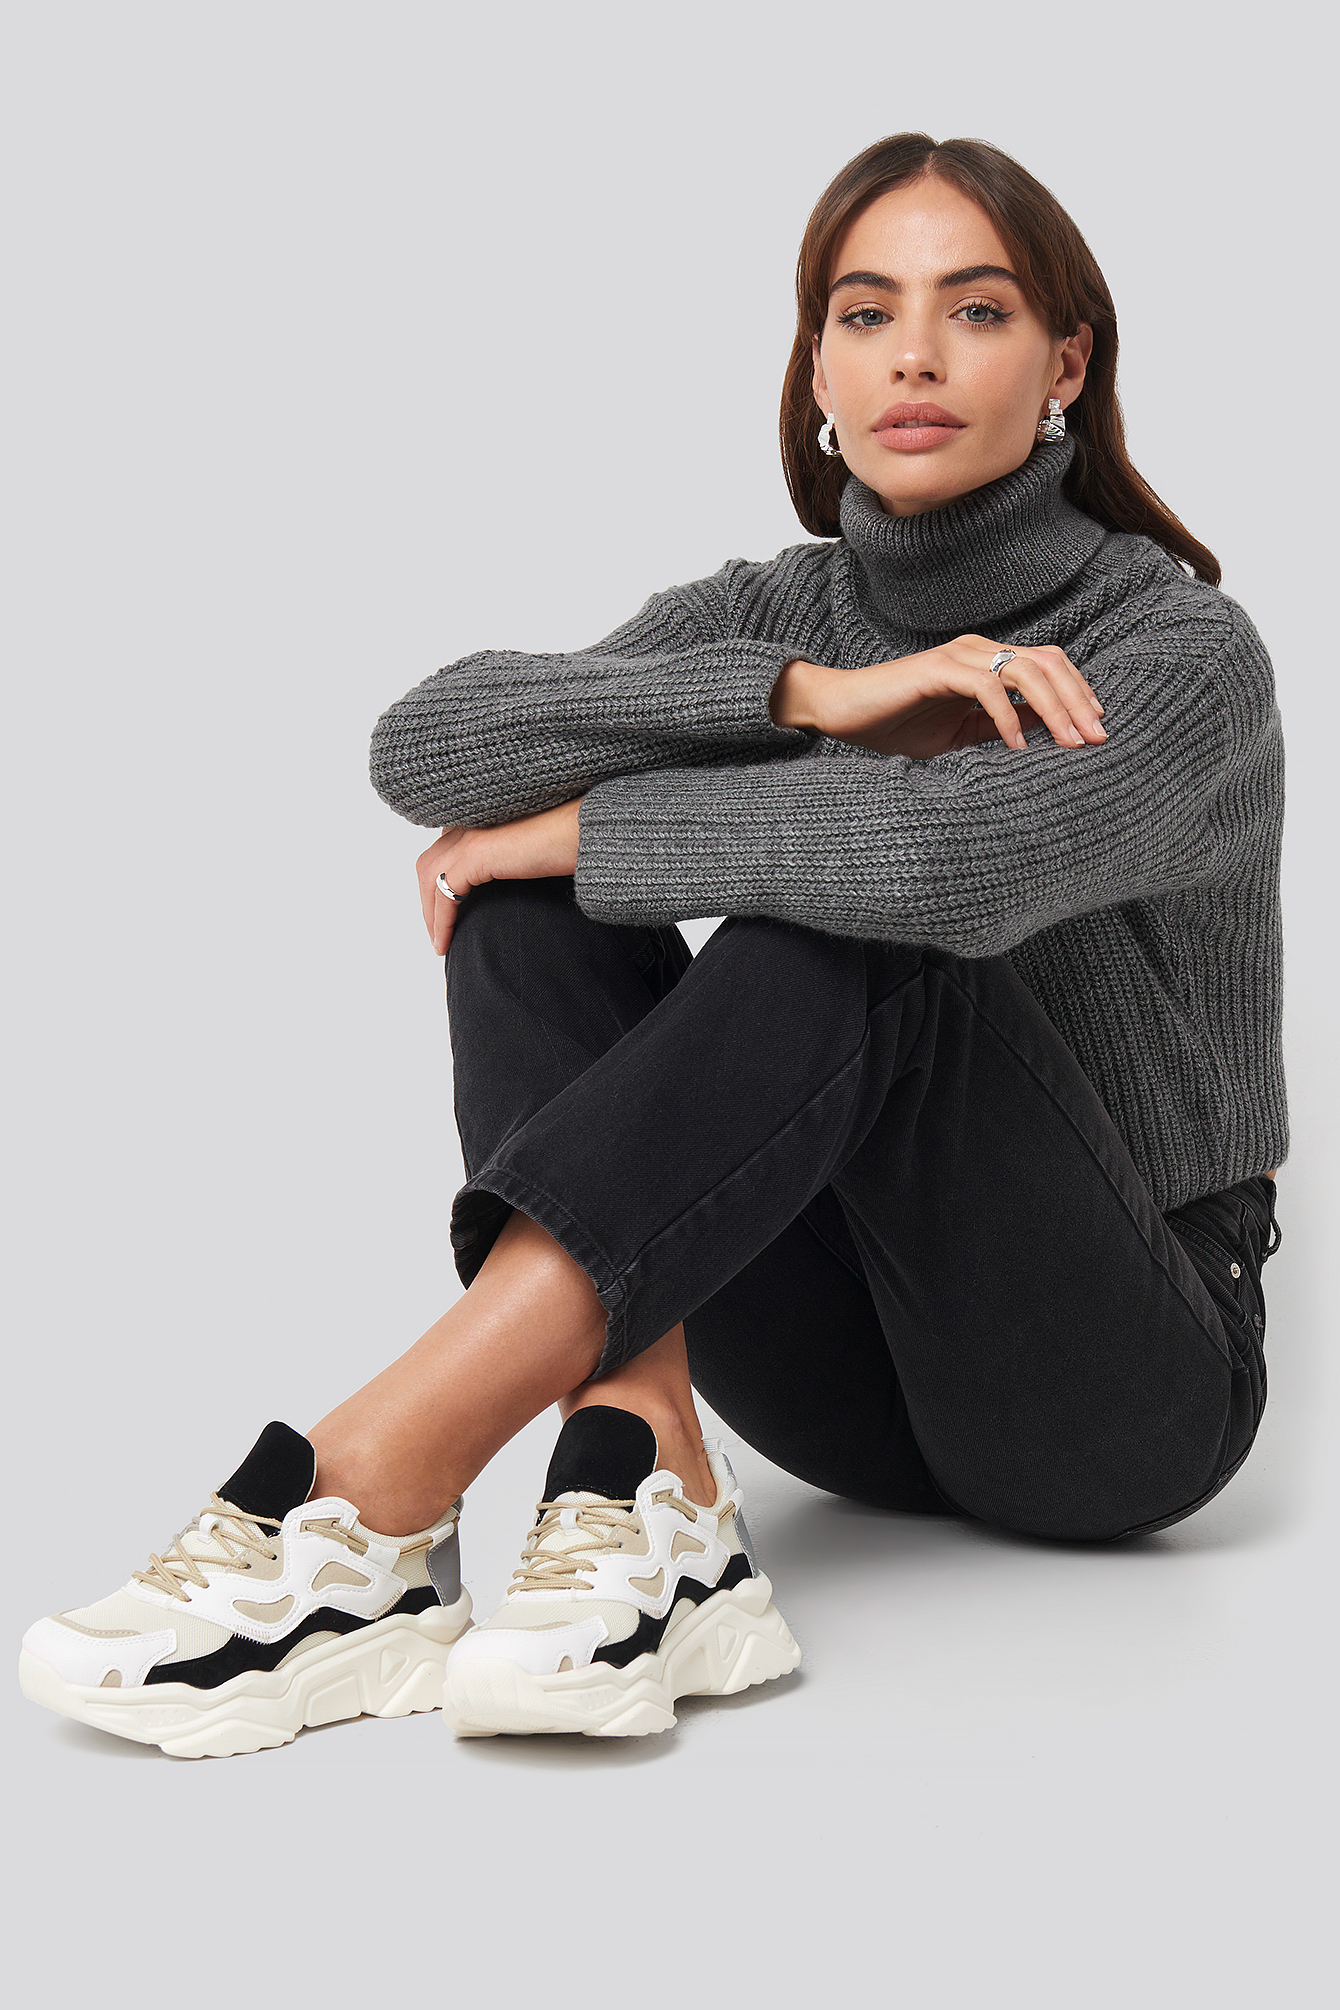 Hannalicious x NA-KD Sporty Chunky Sole Sneakers - Black,White,Beige